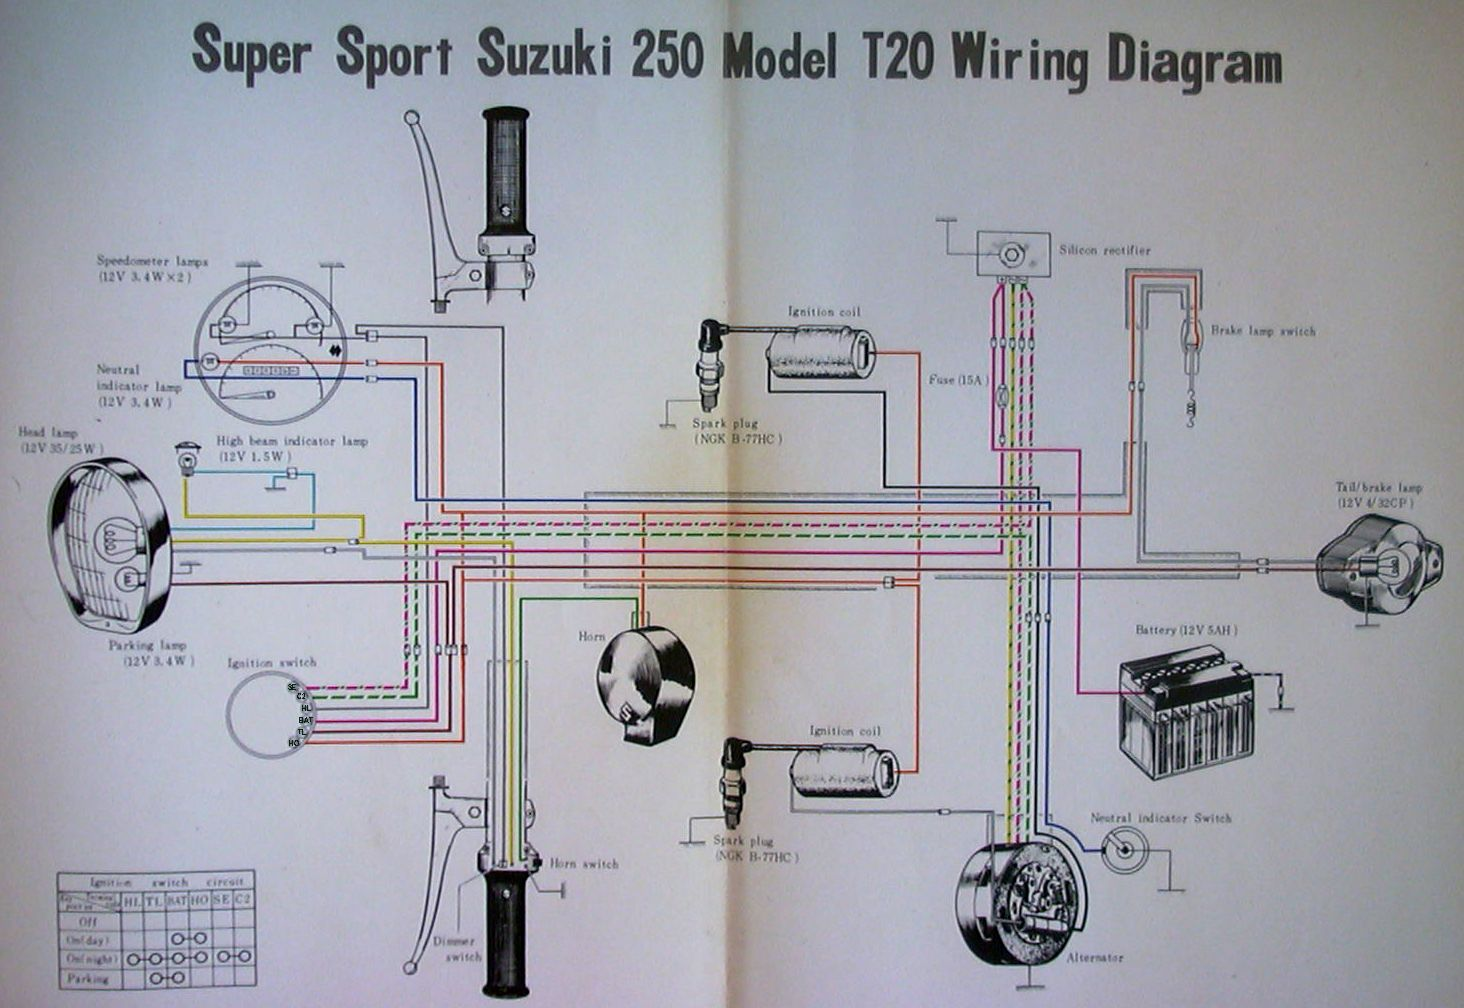 1990 Suzuki Samurai Wiring Diagram Content Resource Of Toyota Pickup Schematic 1984 Schematics Diagrams U2022 Rh Parntesis Co Chevy Blazer